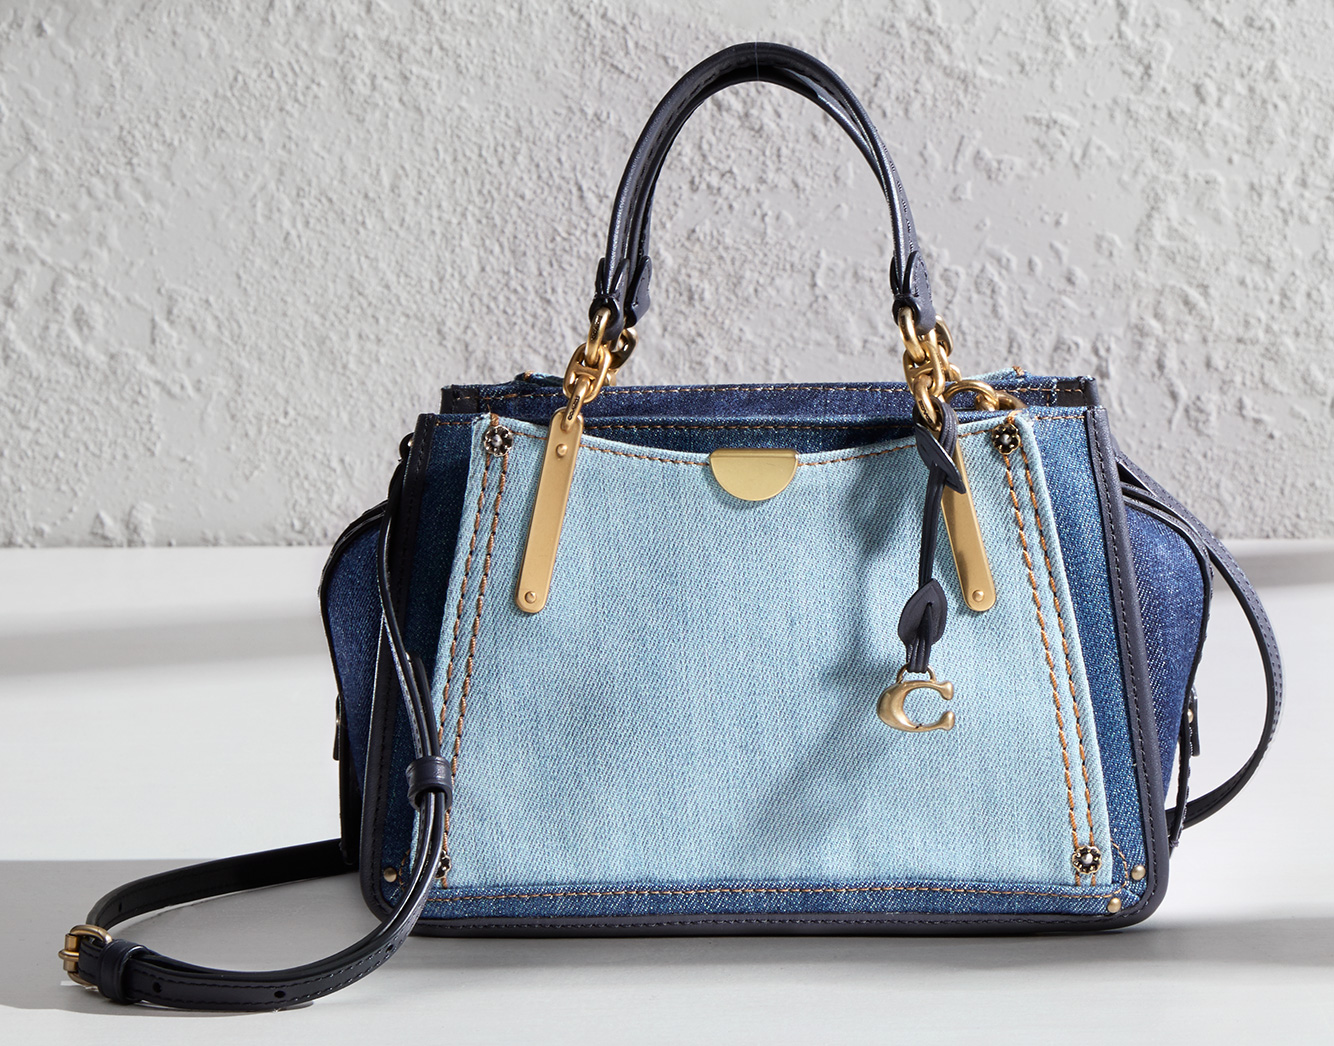 aeee1301287b Spring Handbags and Accessories Trends – Macy s